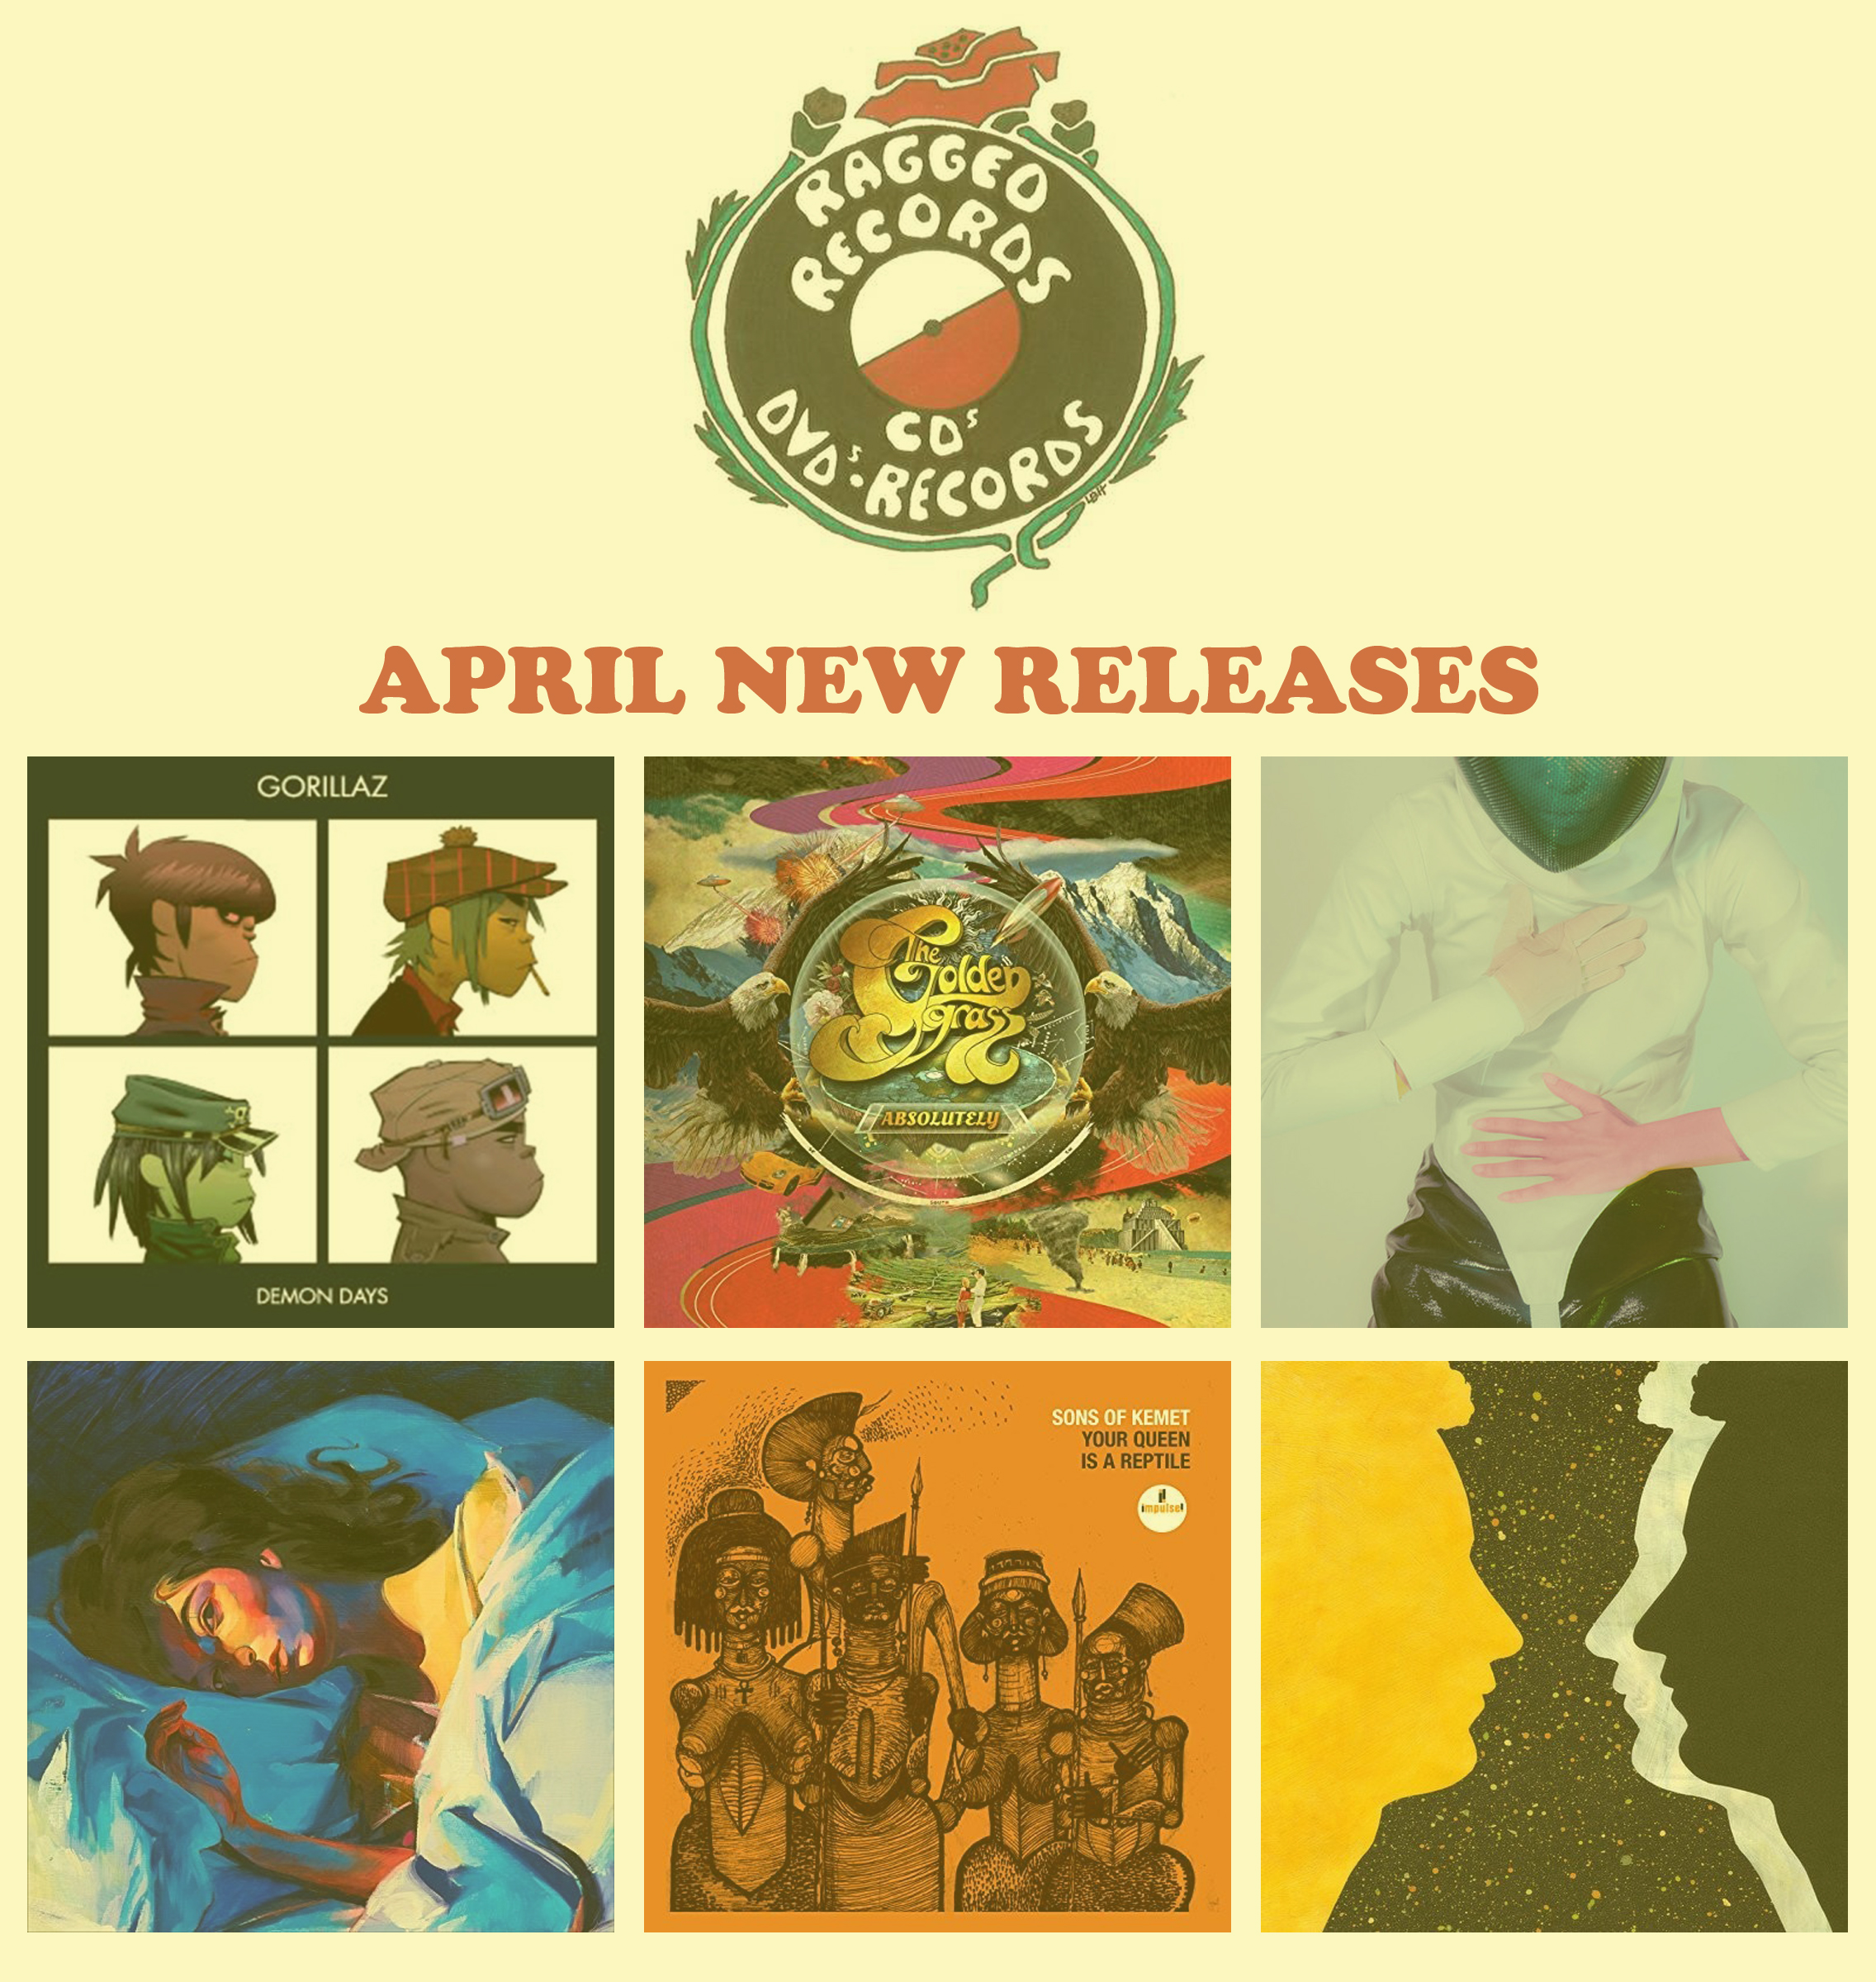 April New Releases 18.jpg